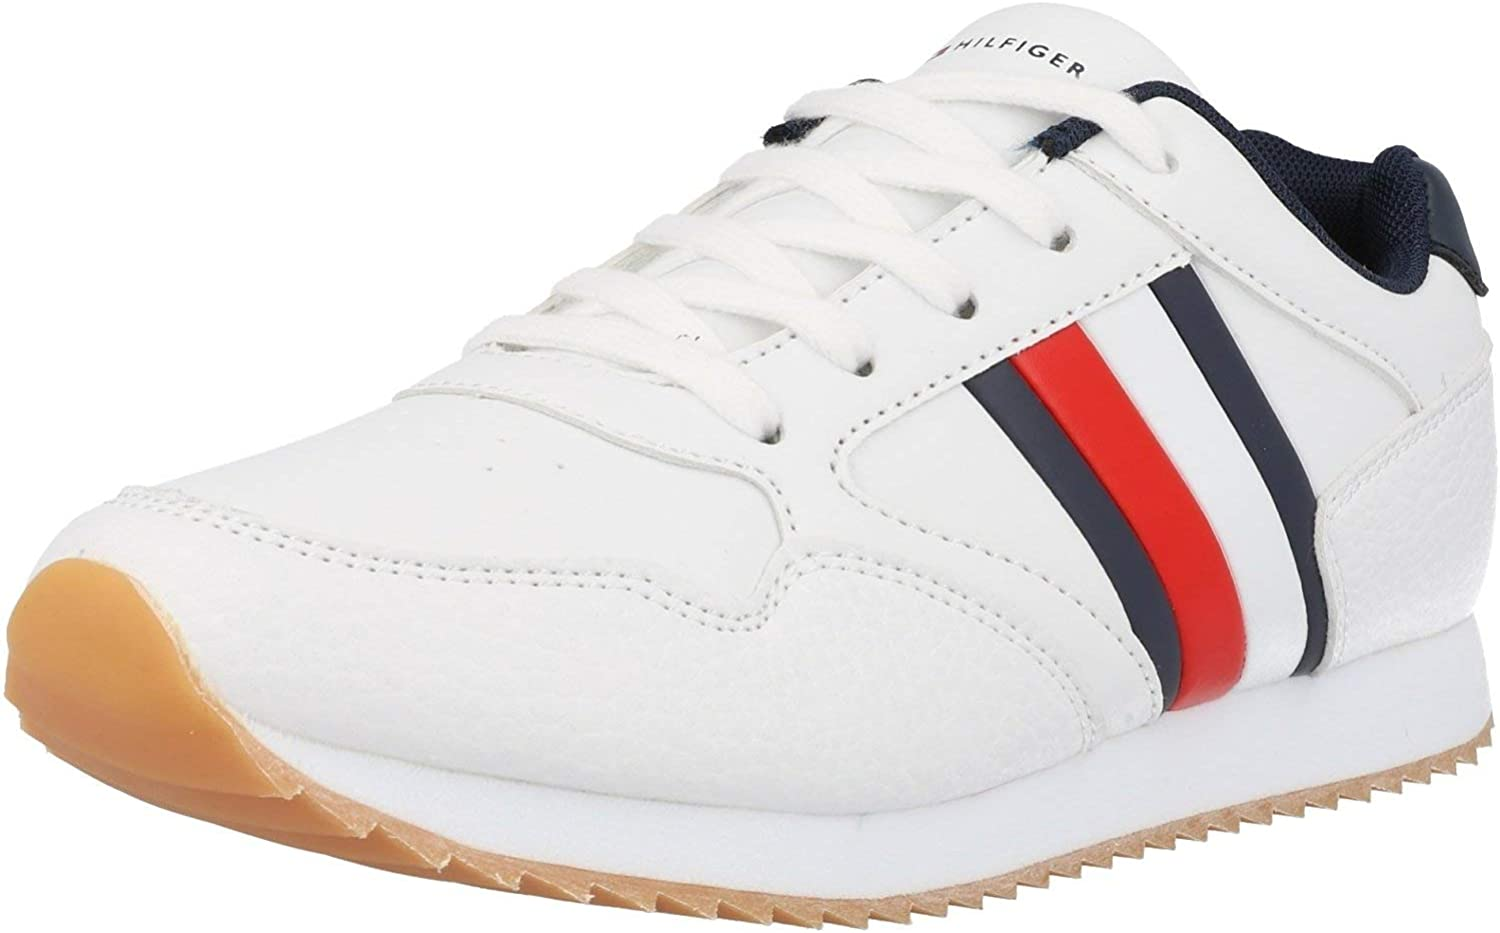 Tommy Hilfiger Trainer White/Blue Eco Leather